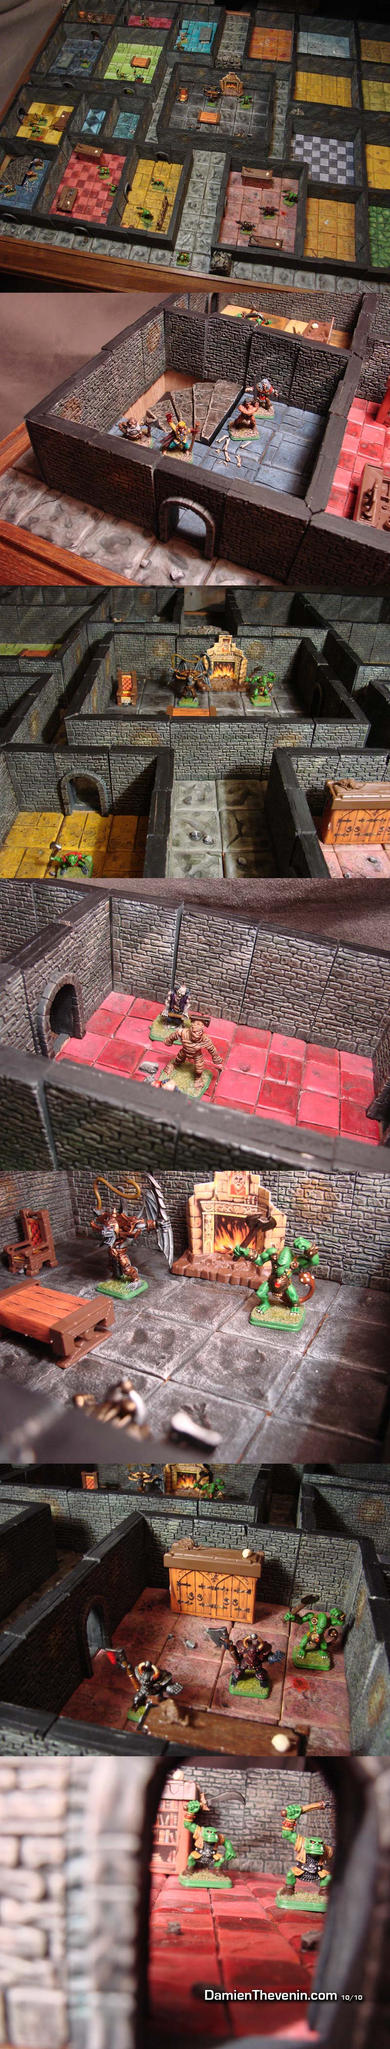 Heroquest gaming table wip 02 by damienthevenin on deviantart for Table th 00 02